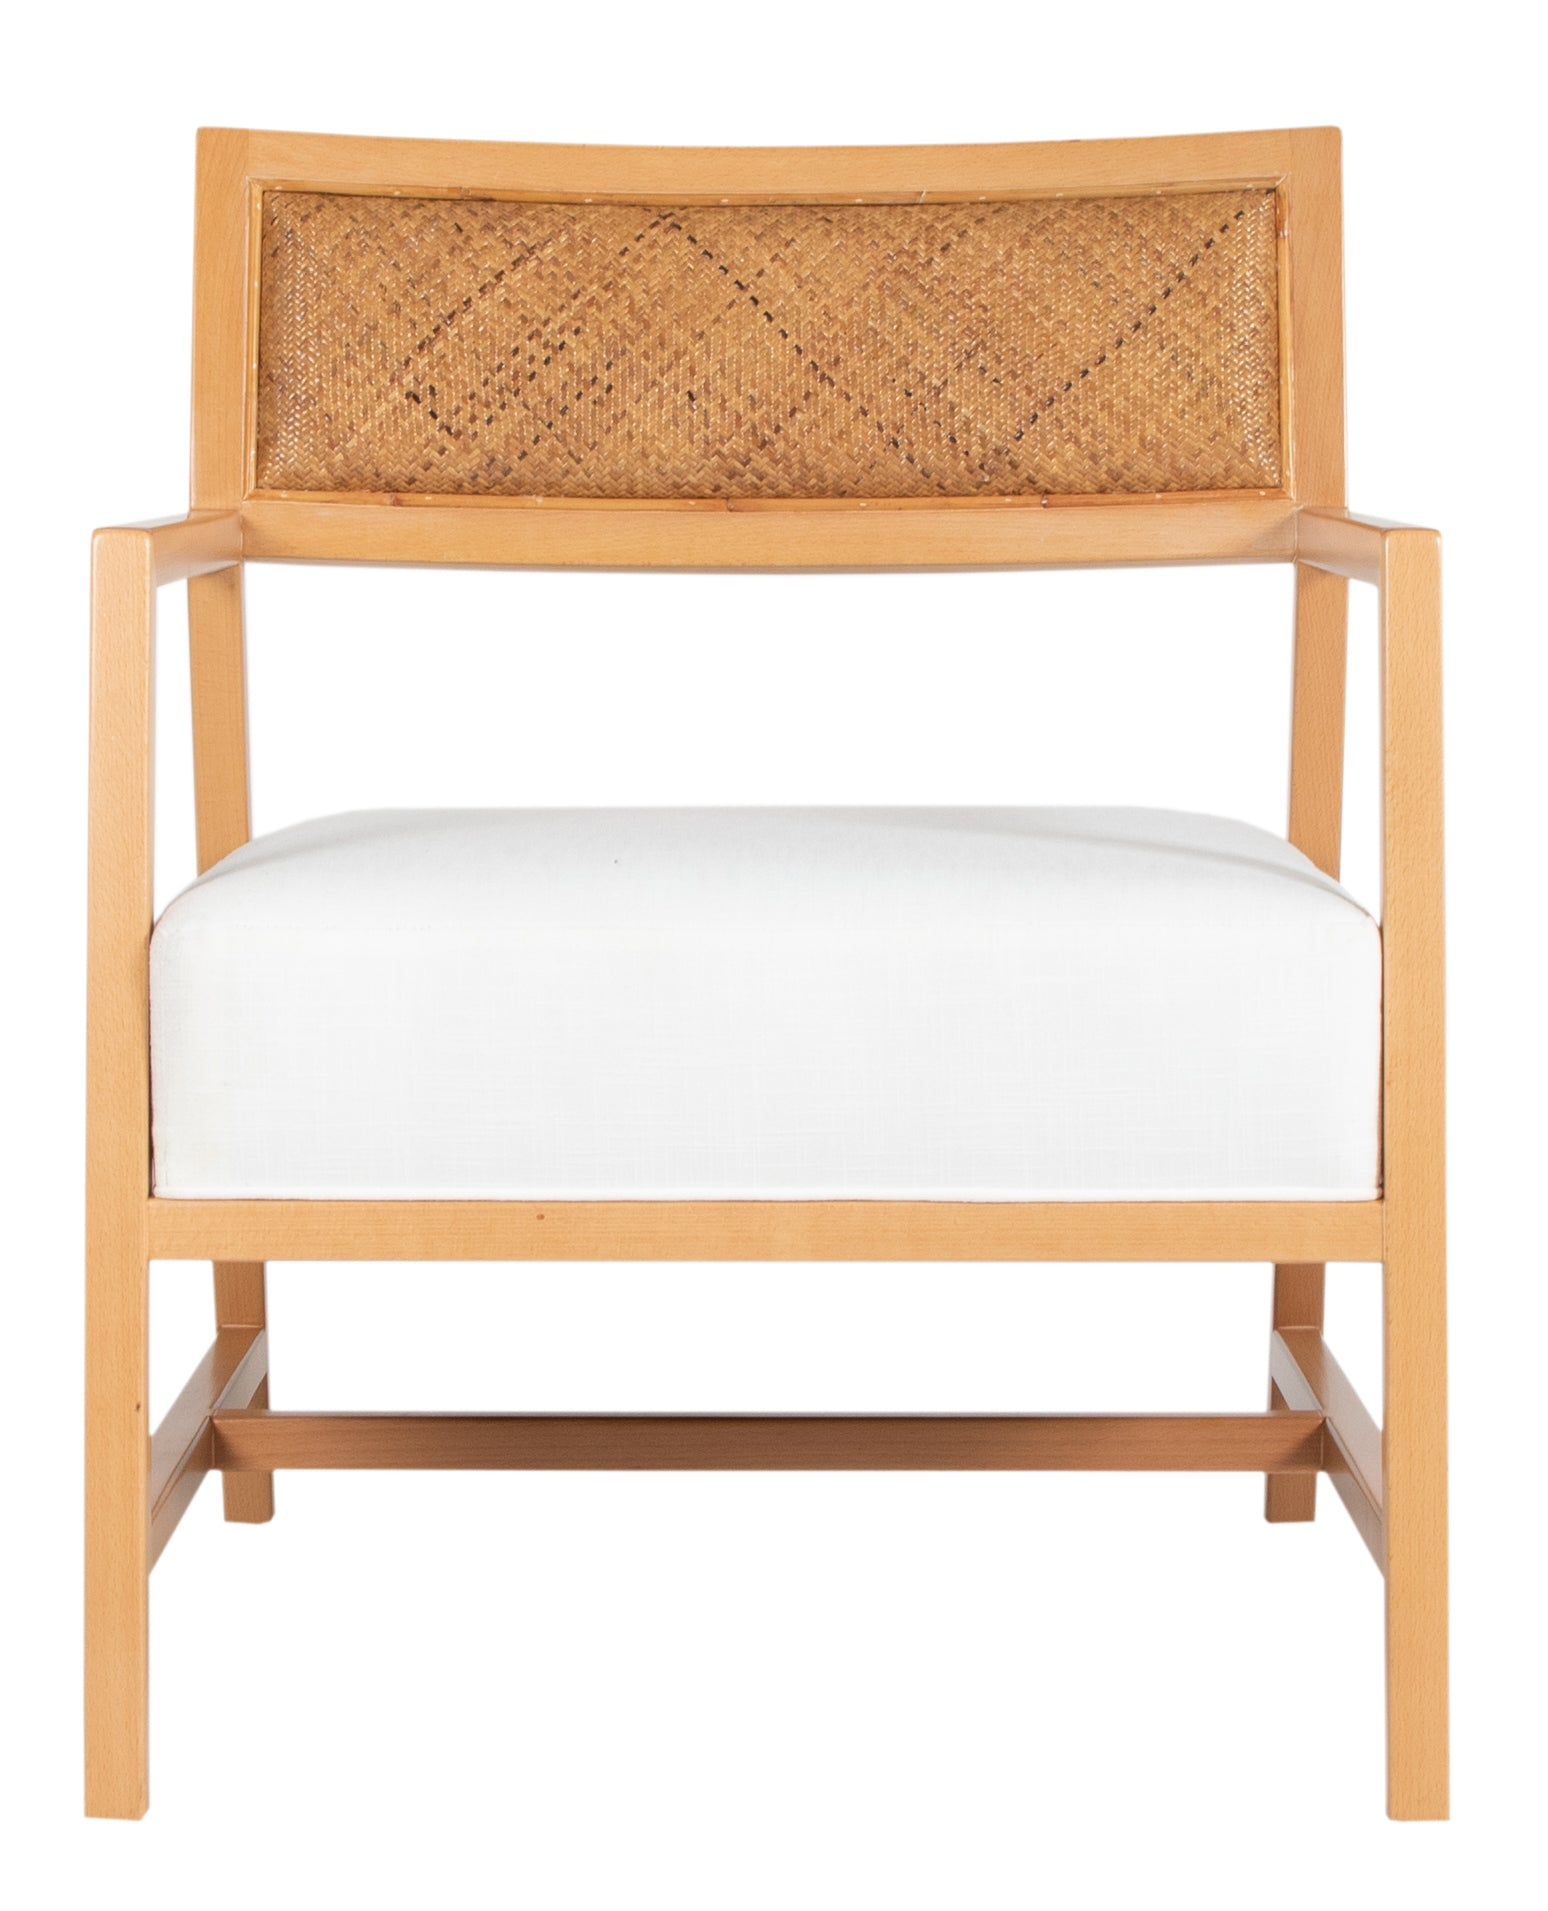 C0790_Metro_Lounge_Chair_Natural_Front_View.jpg